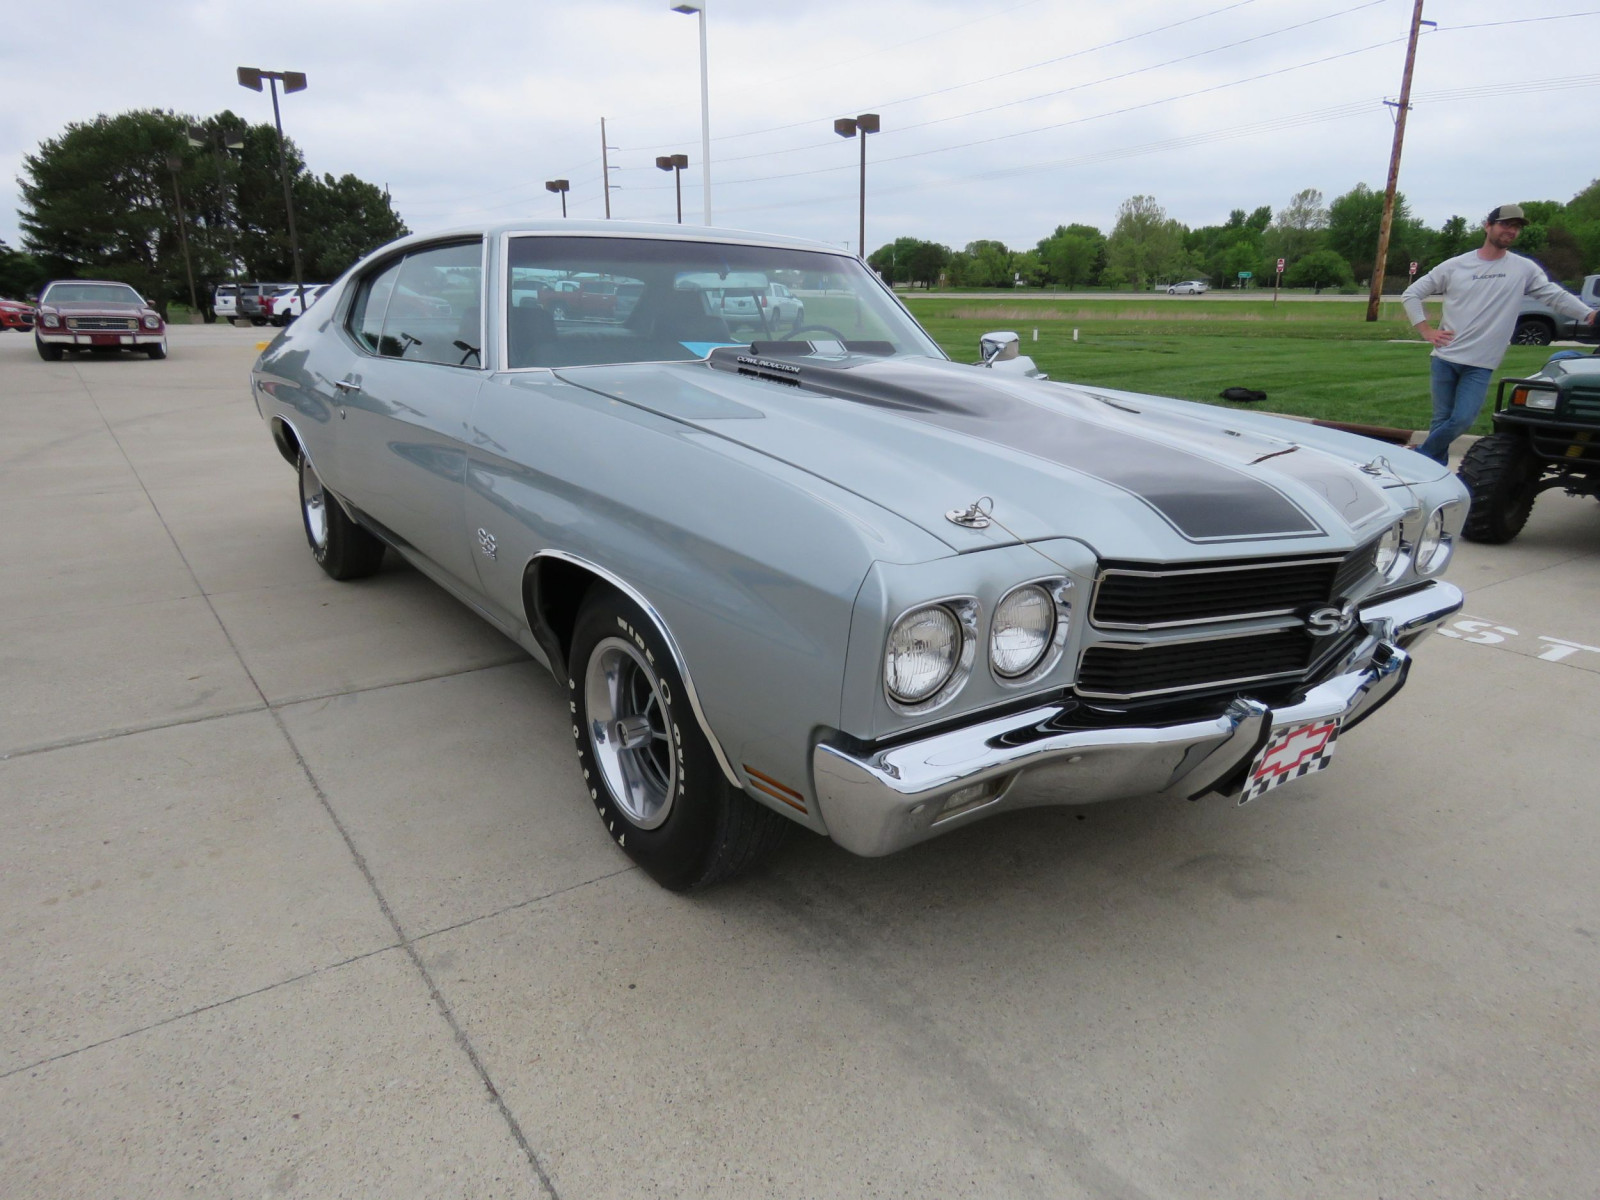 1970 Chevrolet Chevelle SS Coupe - Image 16